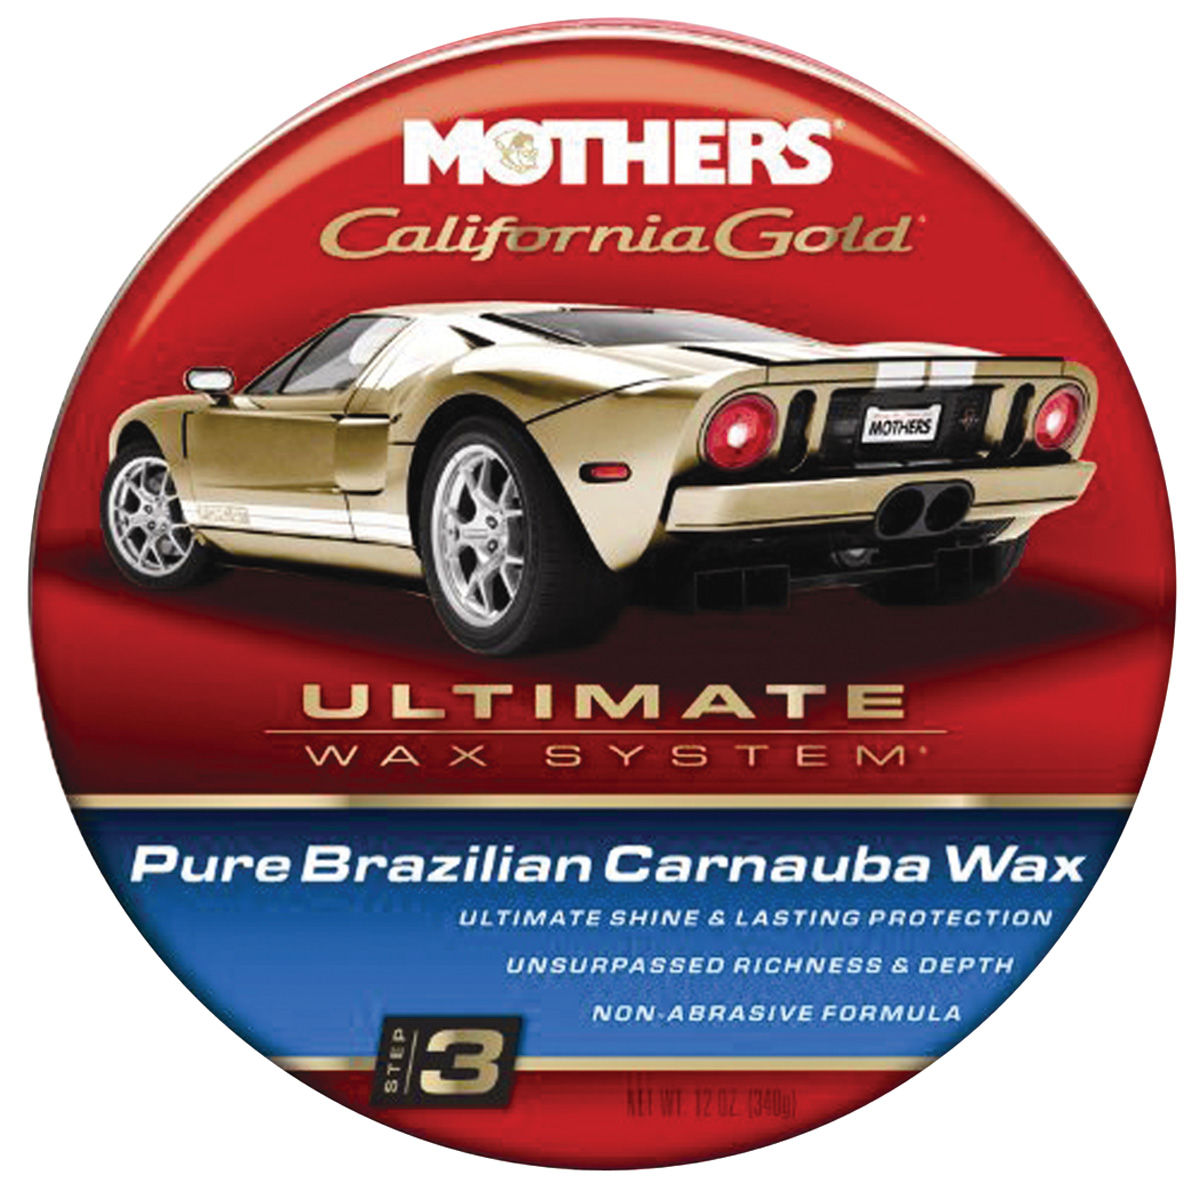 Photo of California Gold Pure Brazilian Carnauba Wax paste, 12-oz.